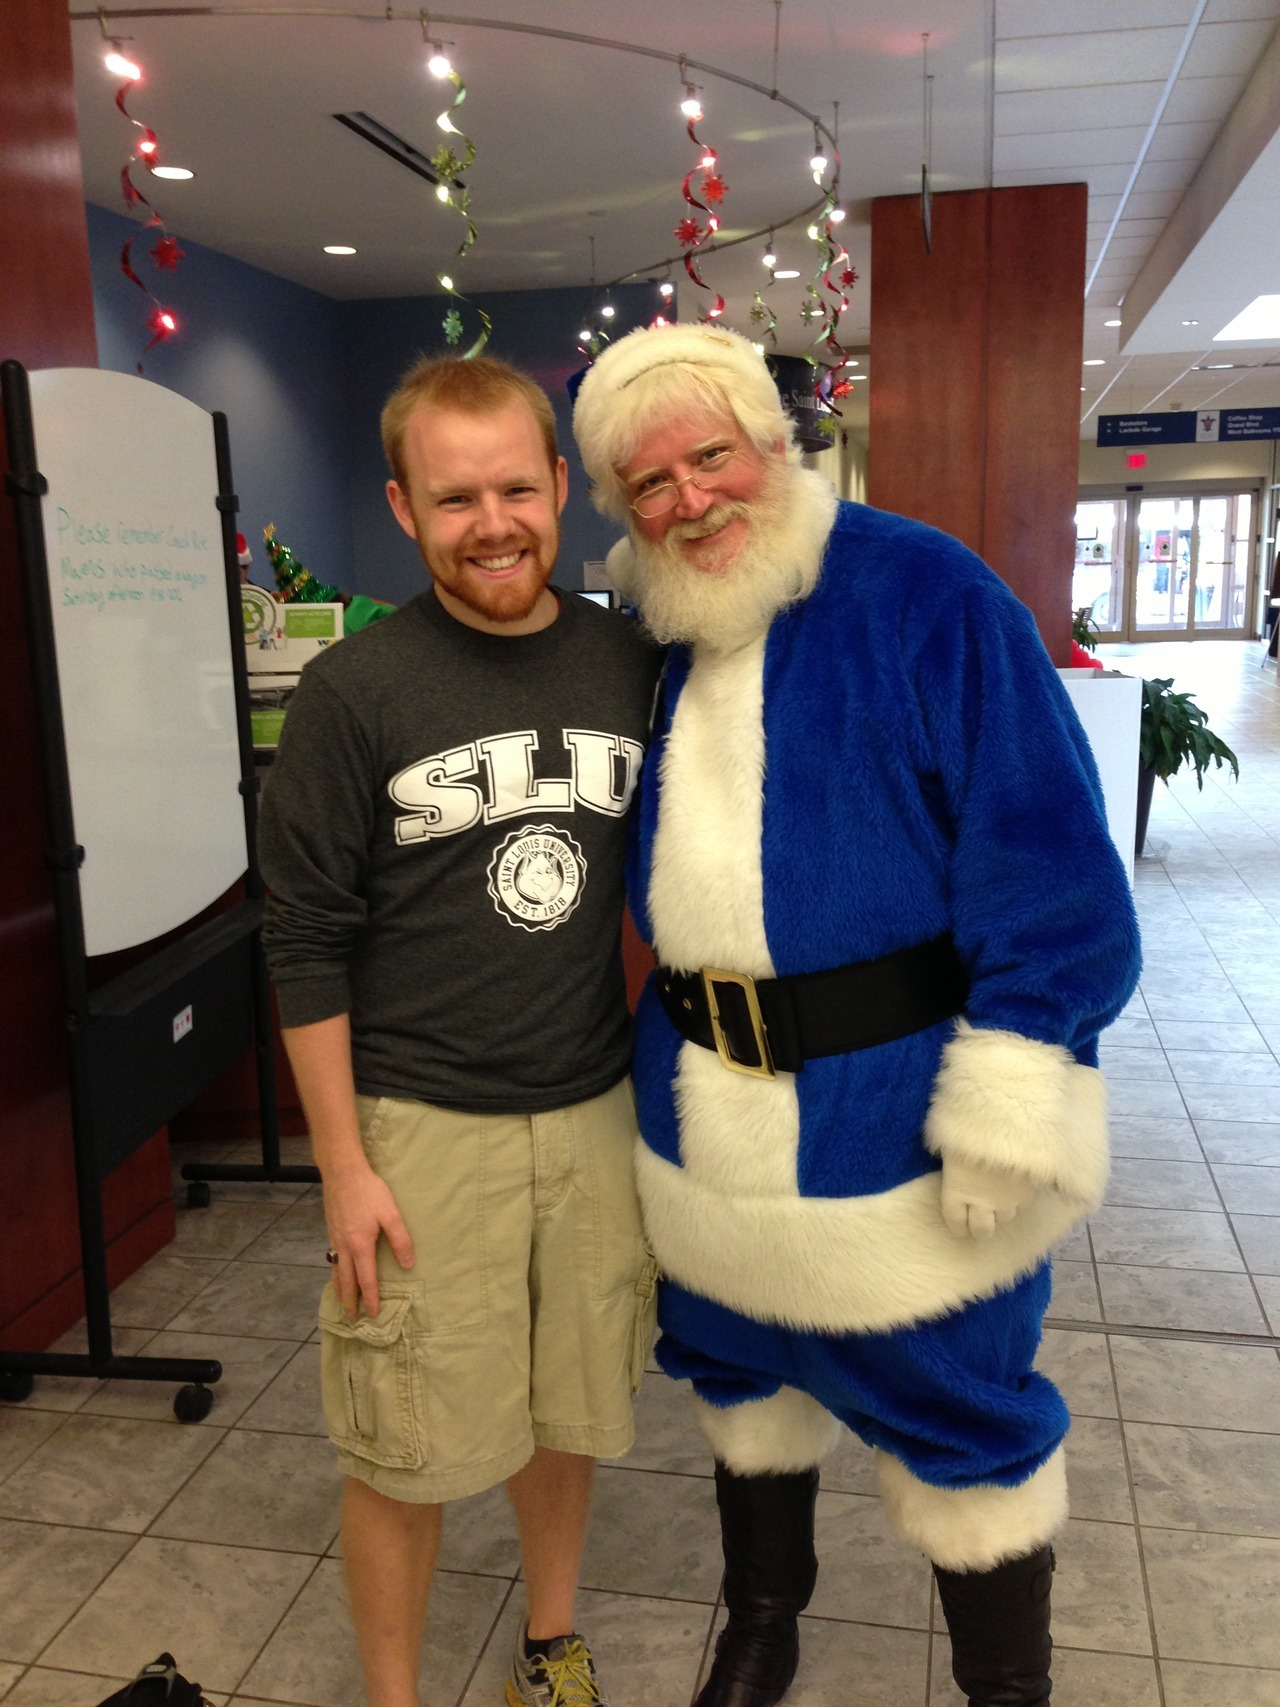 "The Blue Santa Saint Louis University has many Christmas traditions. From the annual Christmas tree lighting in Samuel Cupples House, to the garland, wreathes and holiday lights strung around campus, to the red bows hung on every lamp post, SLU is decorated and ready for the season! Minus the 70 degree weather we had this weekend (which was amazing and most welcome!) it's beginning to feel a lot like Christmas around here! As I was walking through the Busch Student Center this morning I came across a very special visitor - The Blue Santa! After snagging a picture with him, I knew I had to share with y'all what exactly The Blue Santa is and why he's such a big deal here at SLU. Every December The Blue Santa goes to all the faculty and staff offices at Saint Louis University and collects new, donated toys. This coming Thursday, local inner-city kids who may come from more impoverished families will be invited to SLU for a big Christmas party, where Santa will give them each one of the donated toys. This year The Blue Santa has already collected 2,000 toys! All toys leftover from the big St. Nick's Day party on Thursday will then be donated to local shelters, schools and non-profits that also assist families during the holiday season.  In case you were wondering what it means to be a ""Jesuit"" institution… This is one of the best examples as to how our mission here at SLU is lived out daily. Generosity. Saint Louis University. Always in the spirit of giving. AMDG"